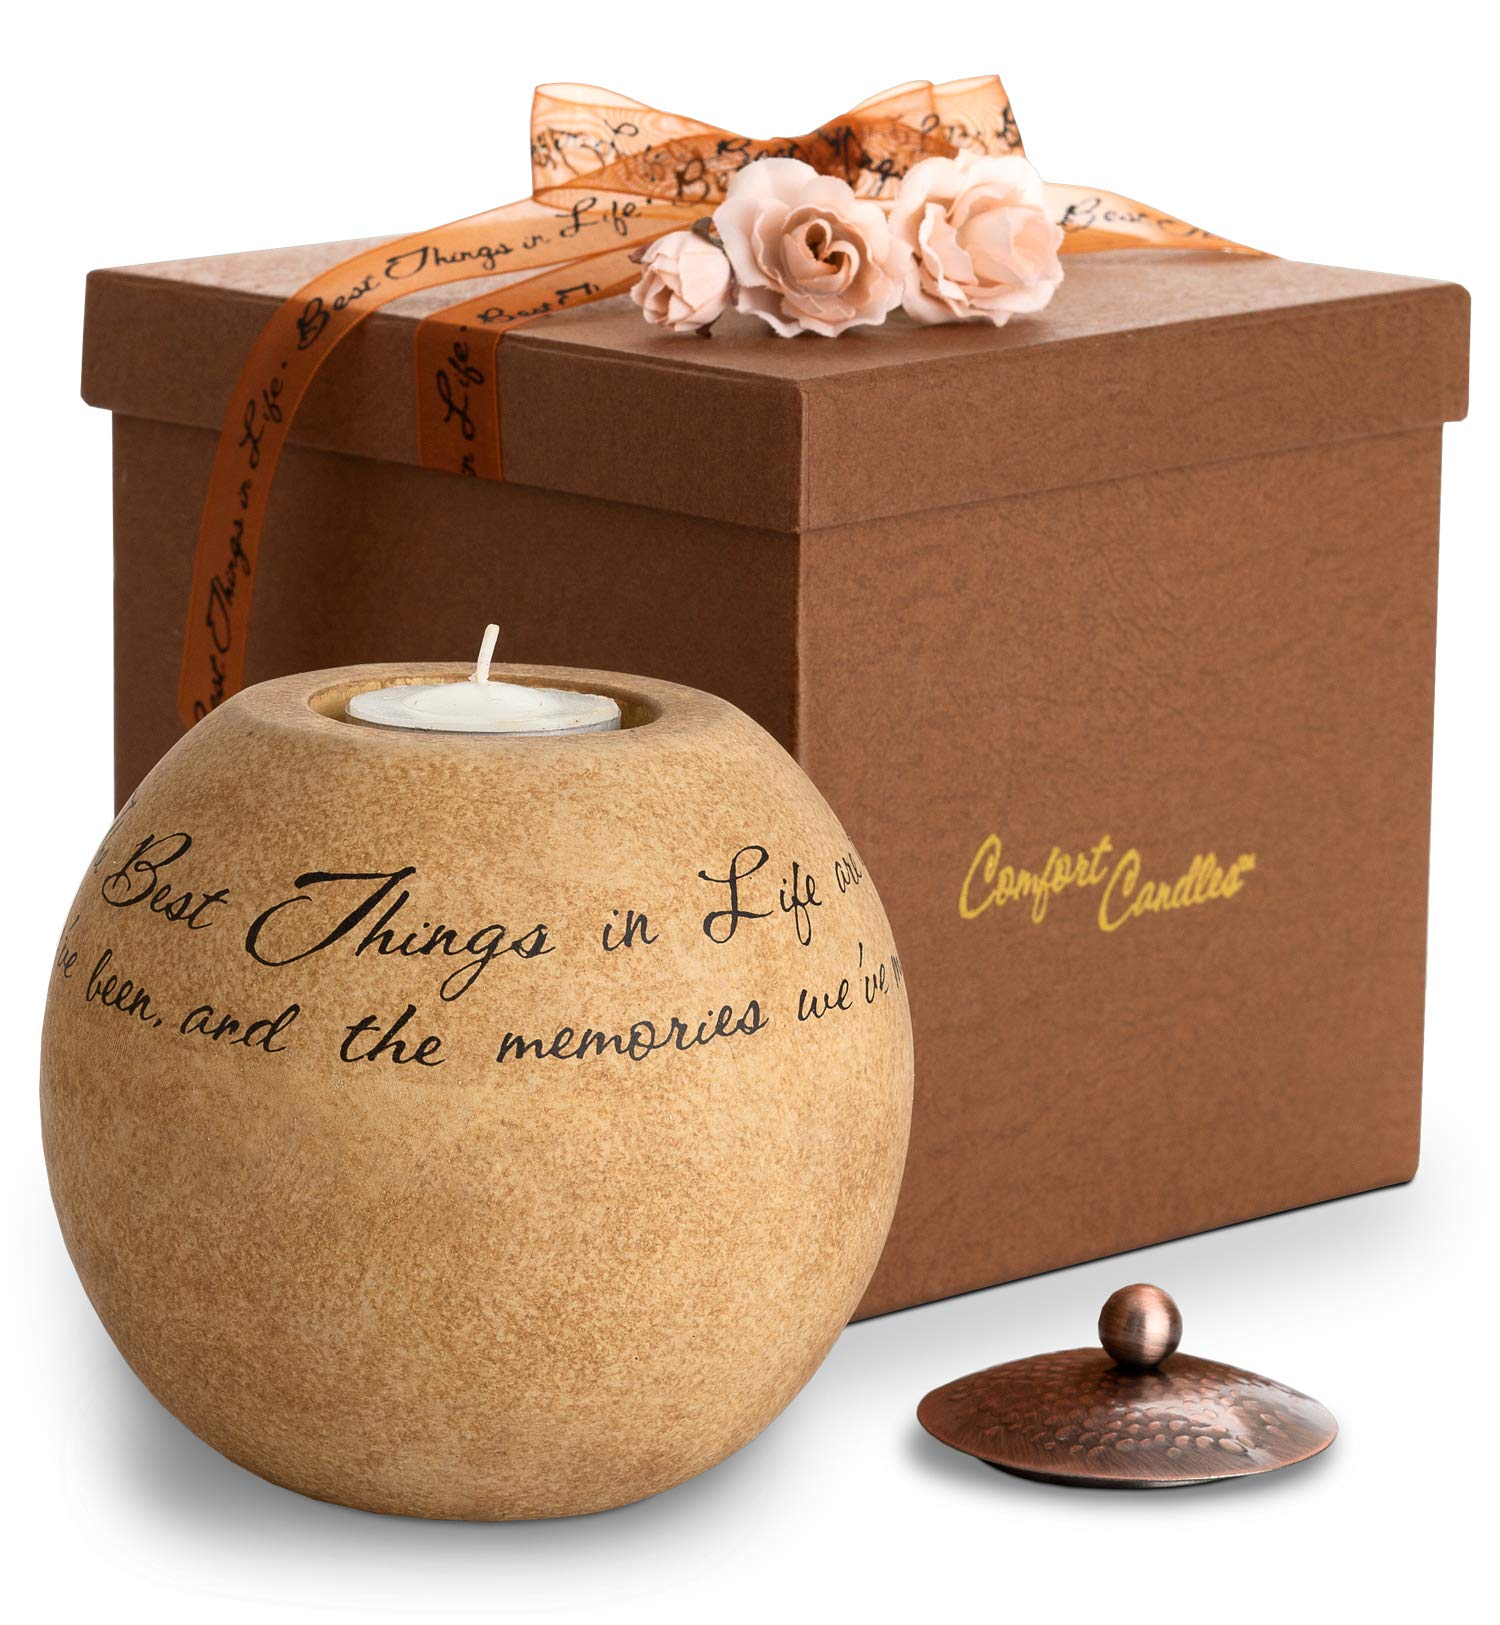 GiftTree Comfort Candle   The Best Things In Life Keepsake Unscented Tea Light Candle Holder   Engraved with Inspirational Message   Perfect Home Décor or Gift for Birthday, Housewarming, Sympathy